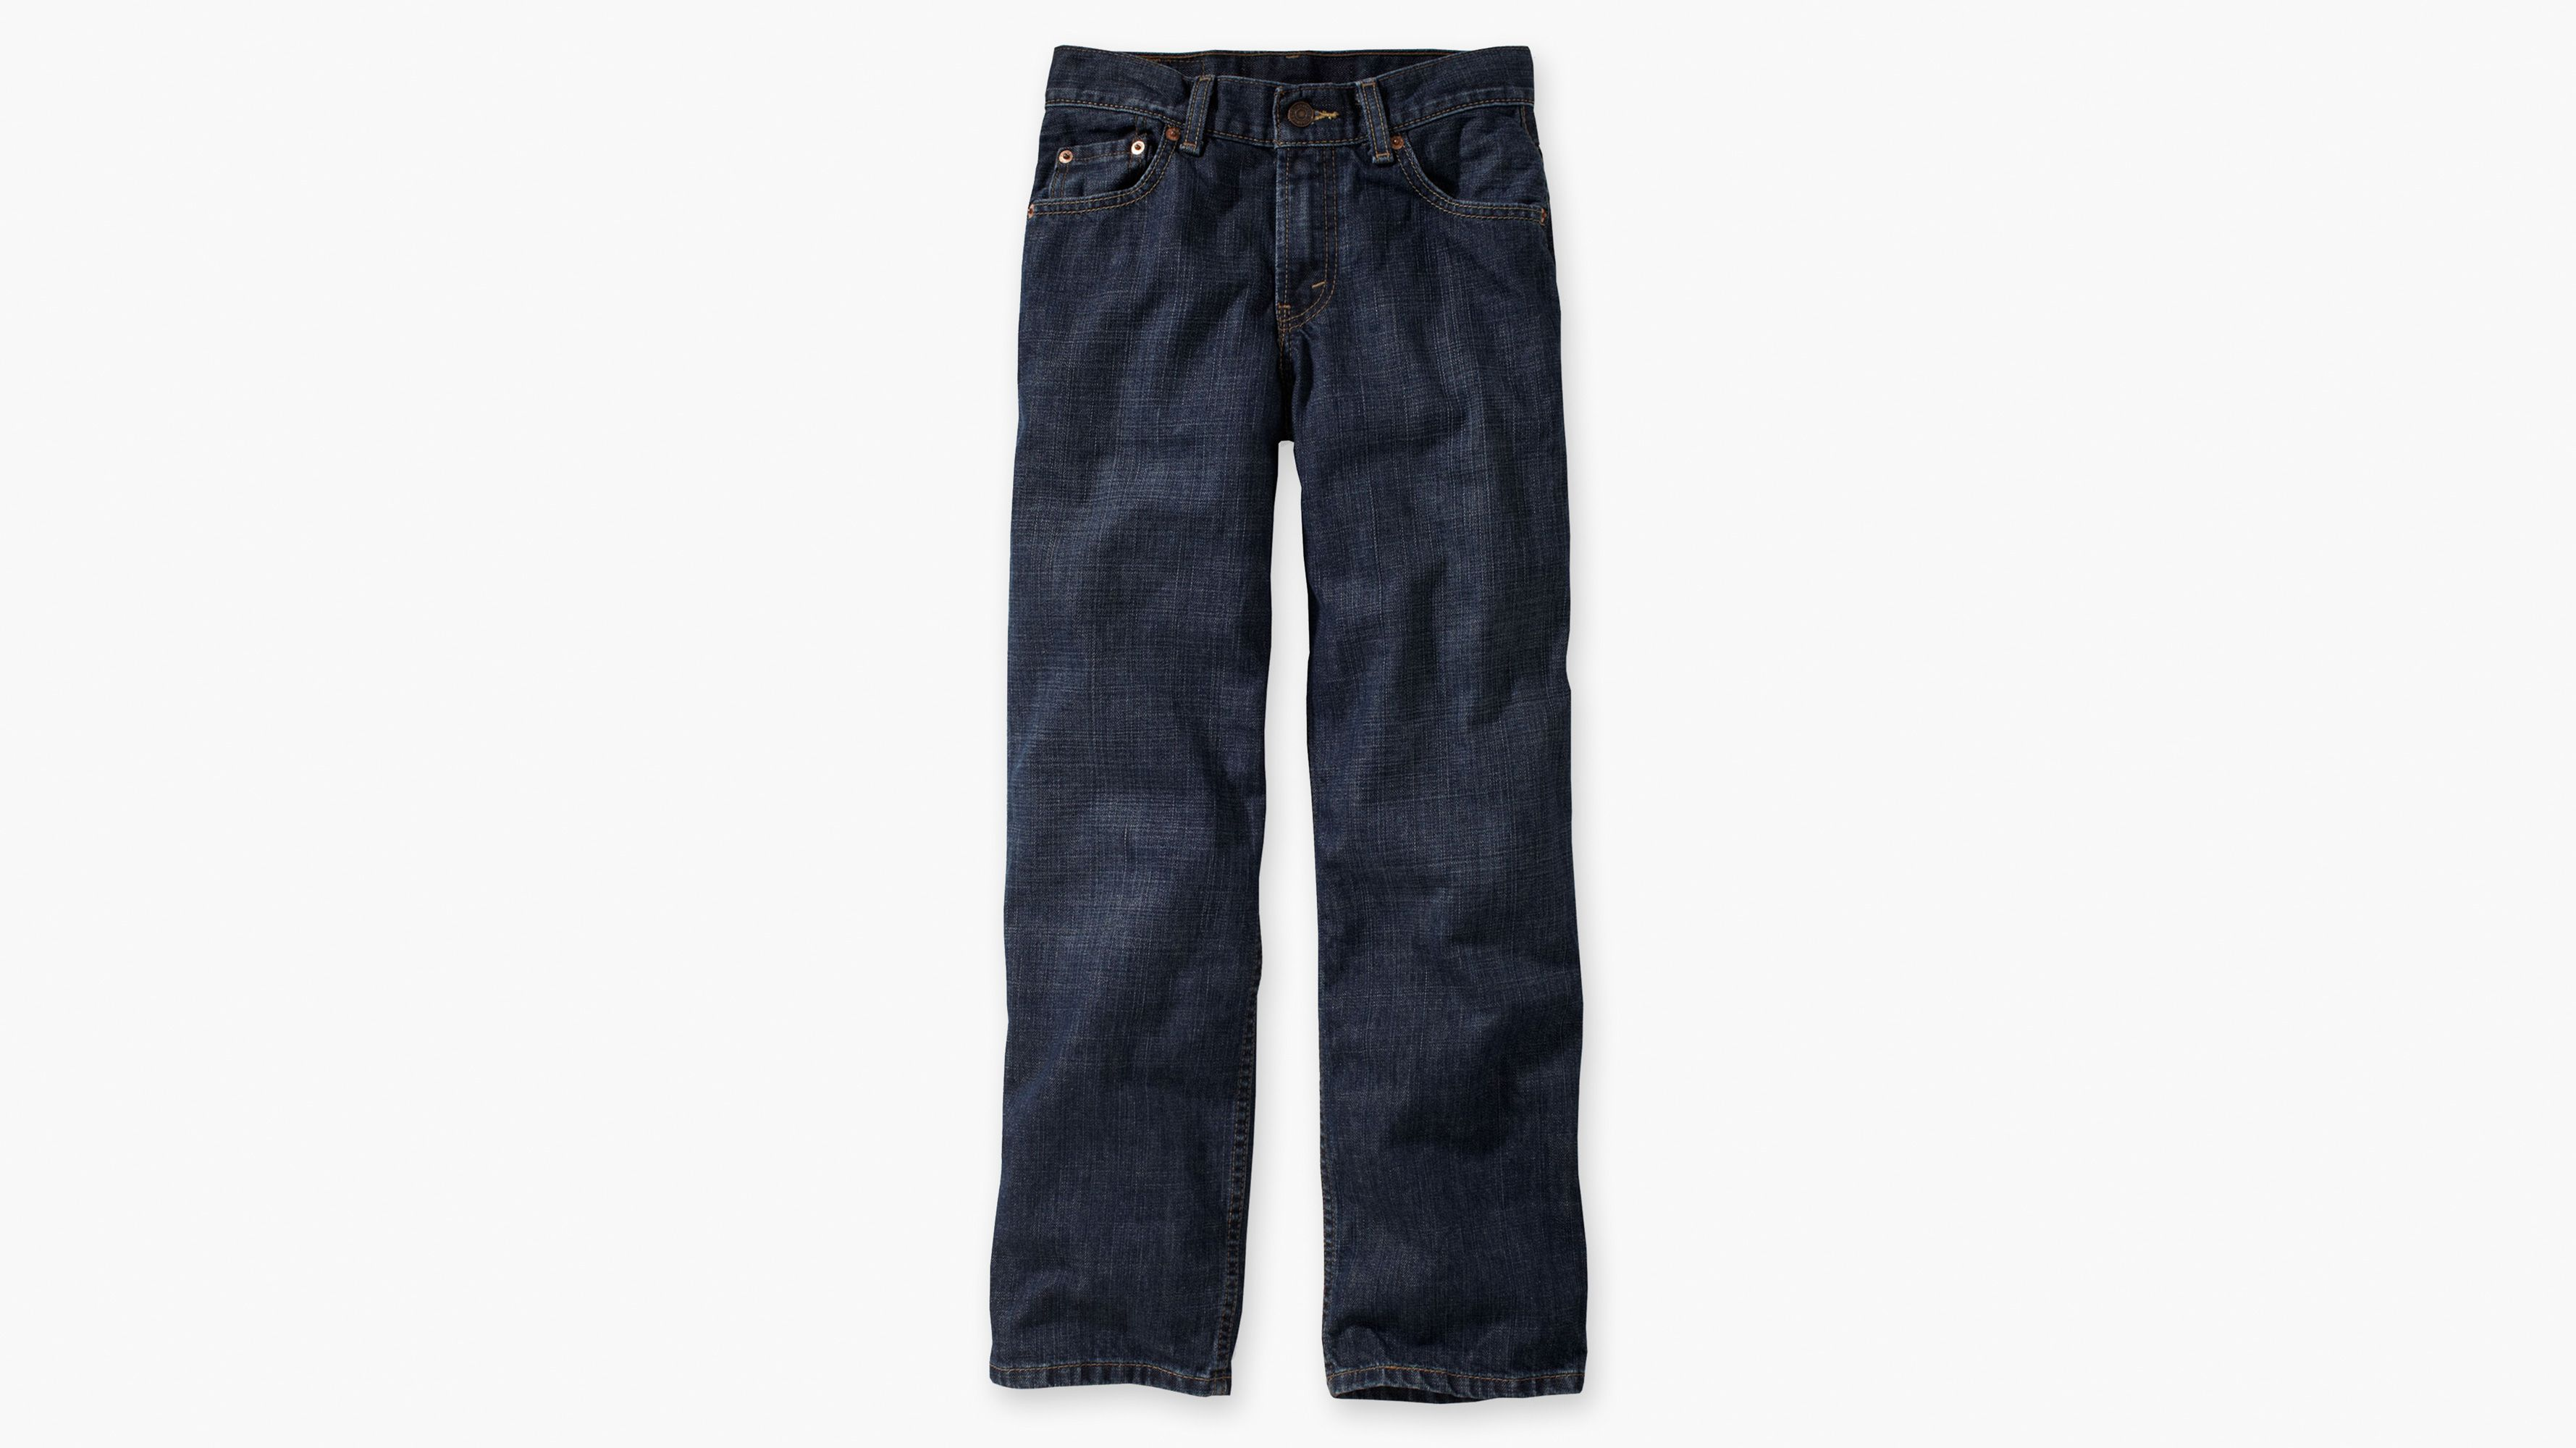 Boys (8-20) 550™ Relaxed Fit Jeans (Slim) - Dark Crosshatch